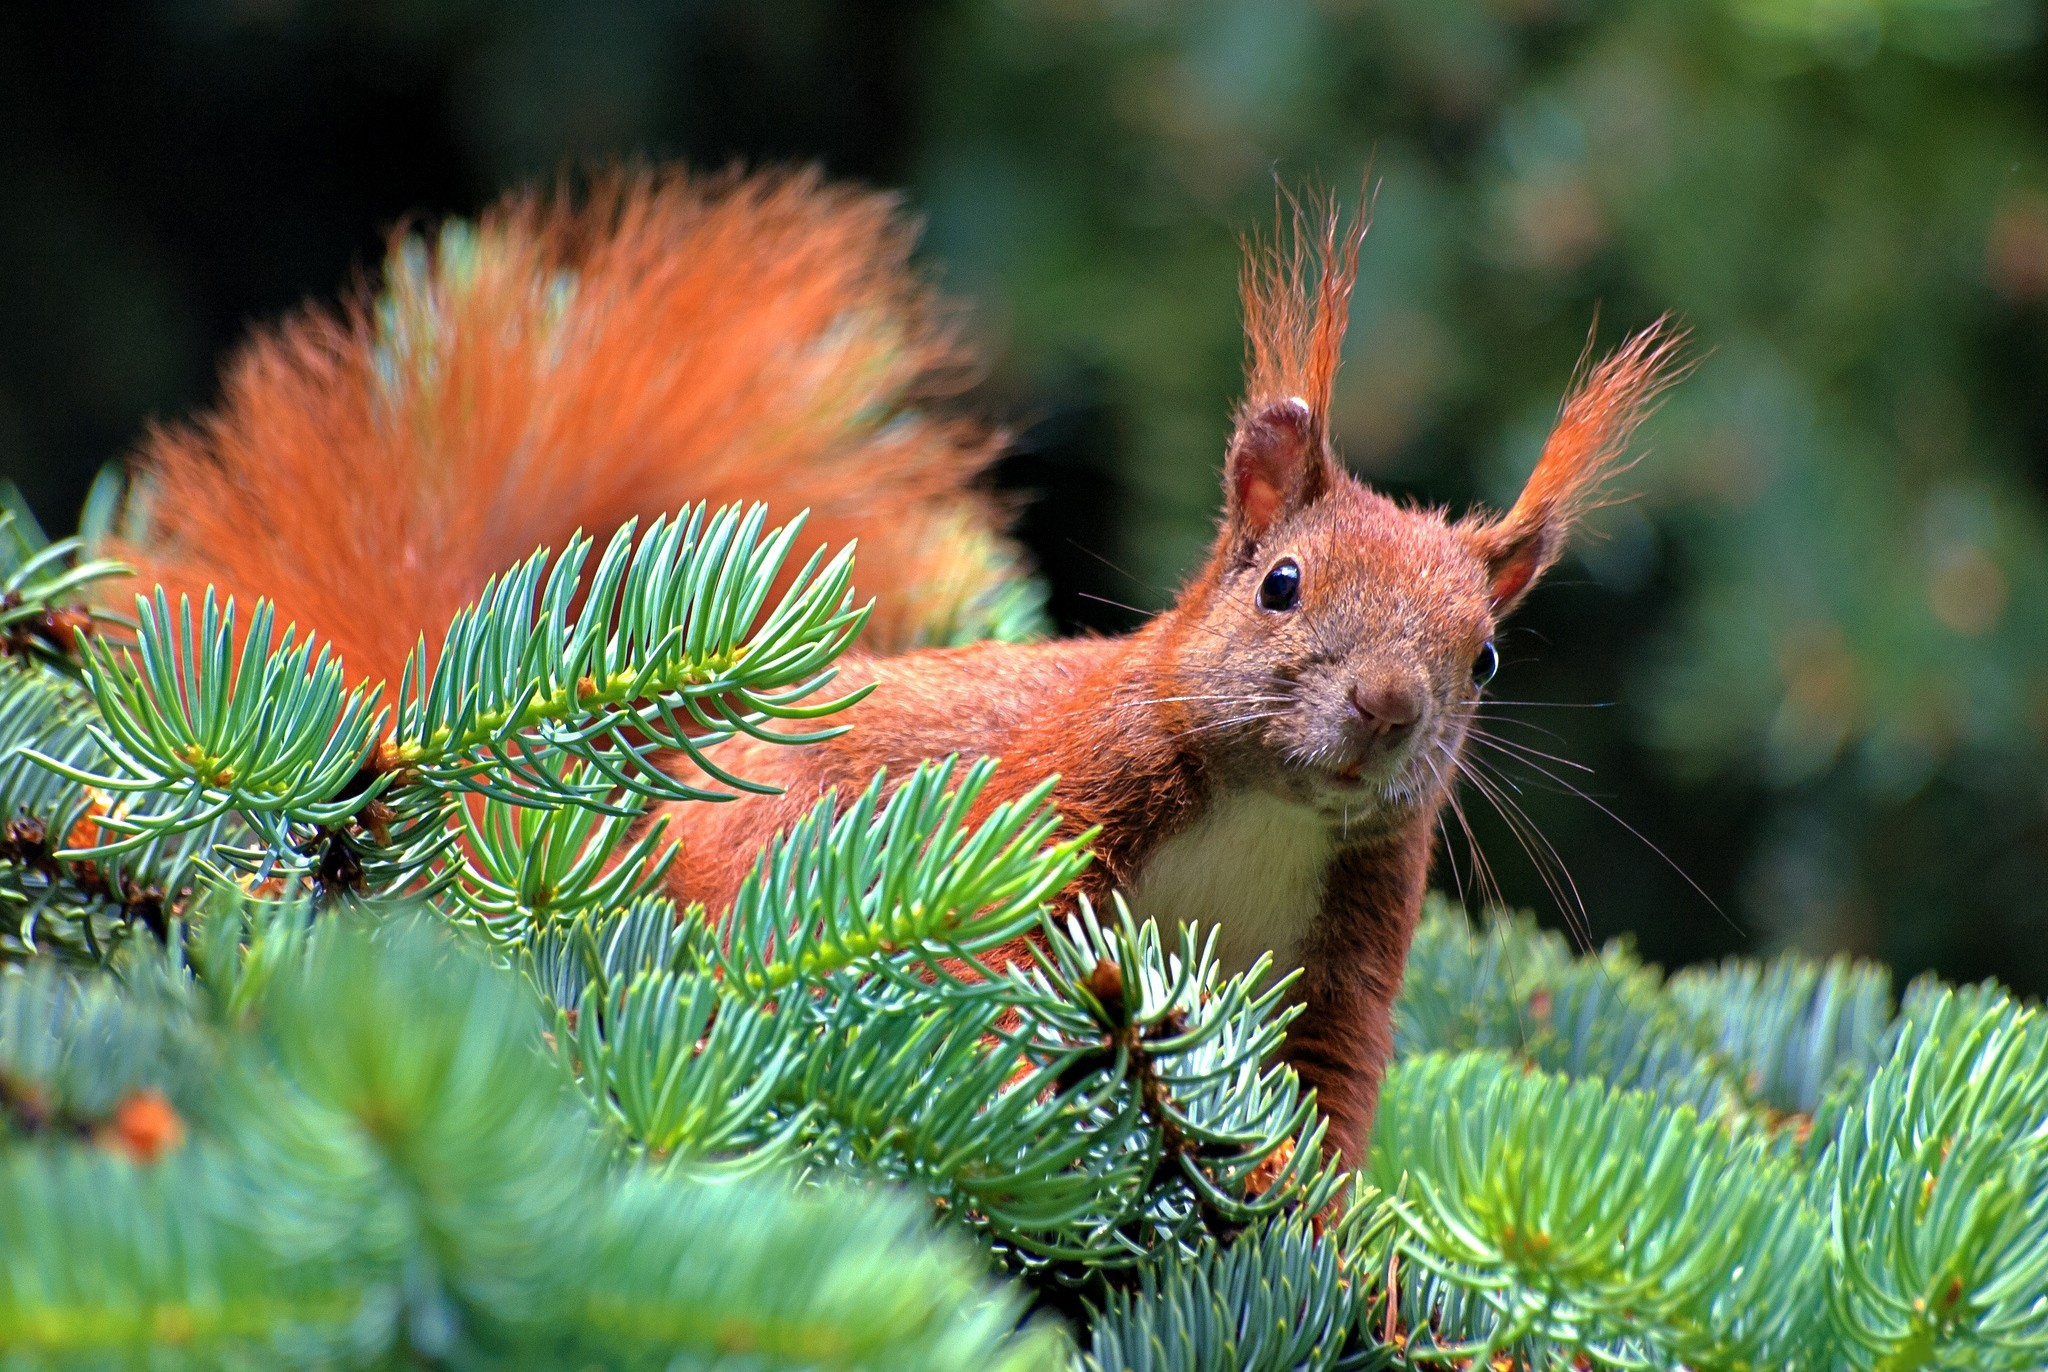 148938 download wallpaper Animals, Spruce, Fir, Branch, Paw, Squirrel, Needles screensavers and pictures for free